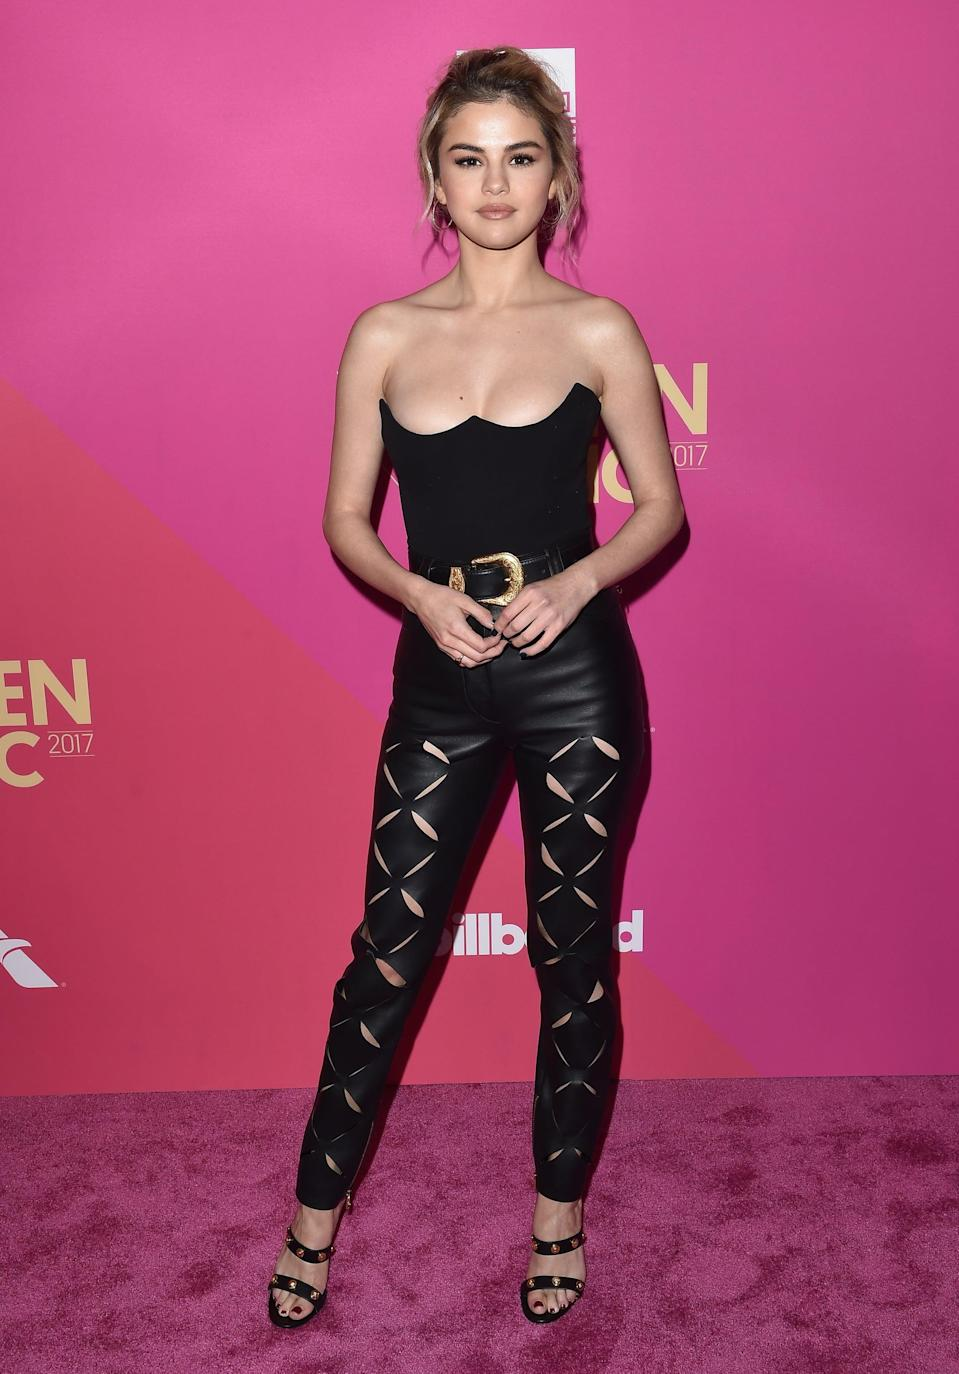 """<p>Selena turned up the heat in <a href=""""https://www.popsugar.com/fashion/Selena-Gomez-Versace-Leather-Outfit-Billboard-Music-Awards-44319064"""" class=""""link rapid-noclick-resp"""" rel=""""nofollow noopener"""" target=""""_blank"""" data-ylk=""""slk:all-black Versace"""">all-black Versace</a> at the 2017 Billboard Women in Music Awards in California. Her cutout leather trousers drew attention downward - straight to her double-strap sandals, also by Versace, of course.</p>"""